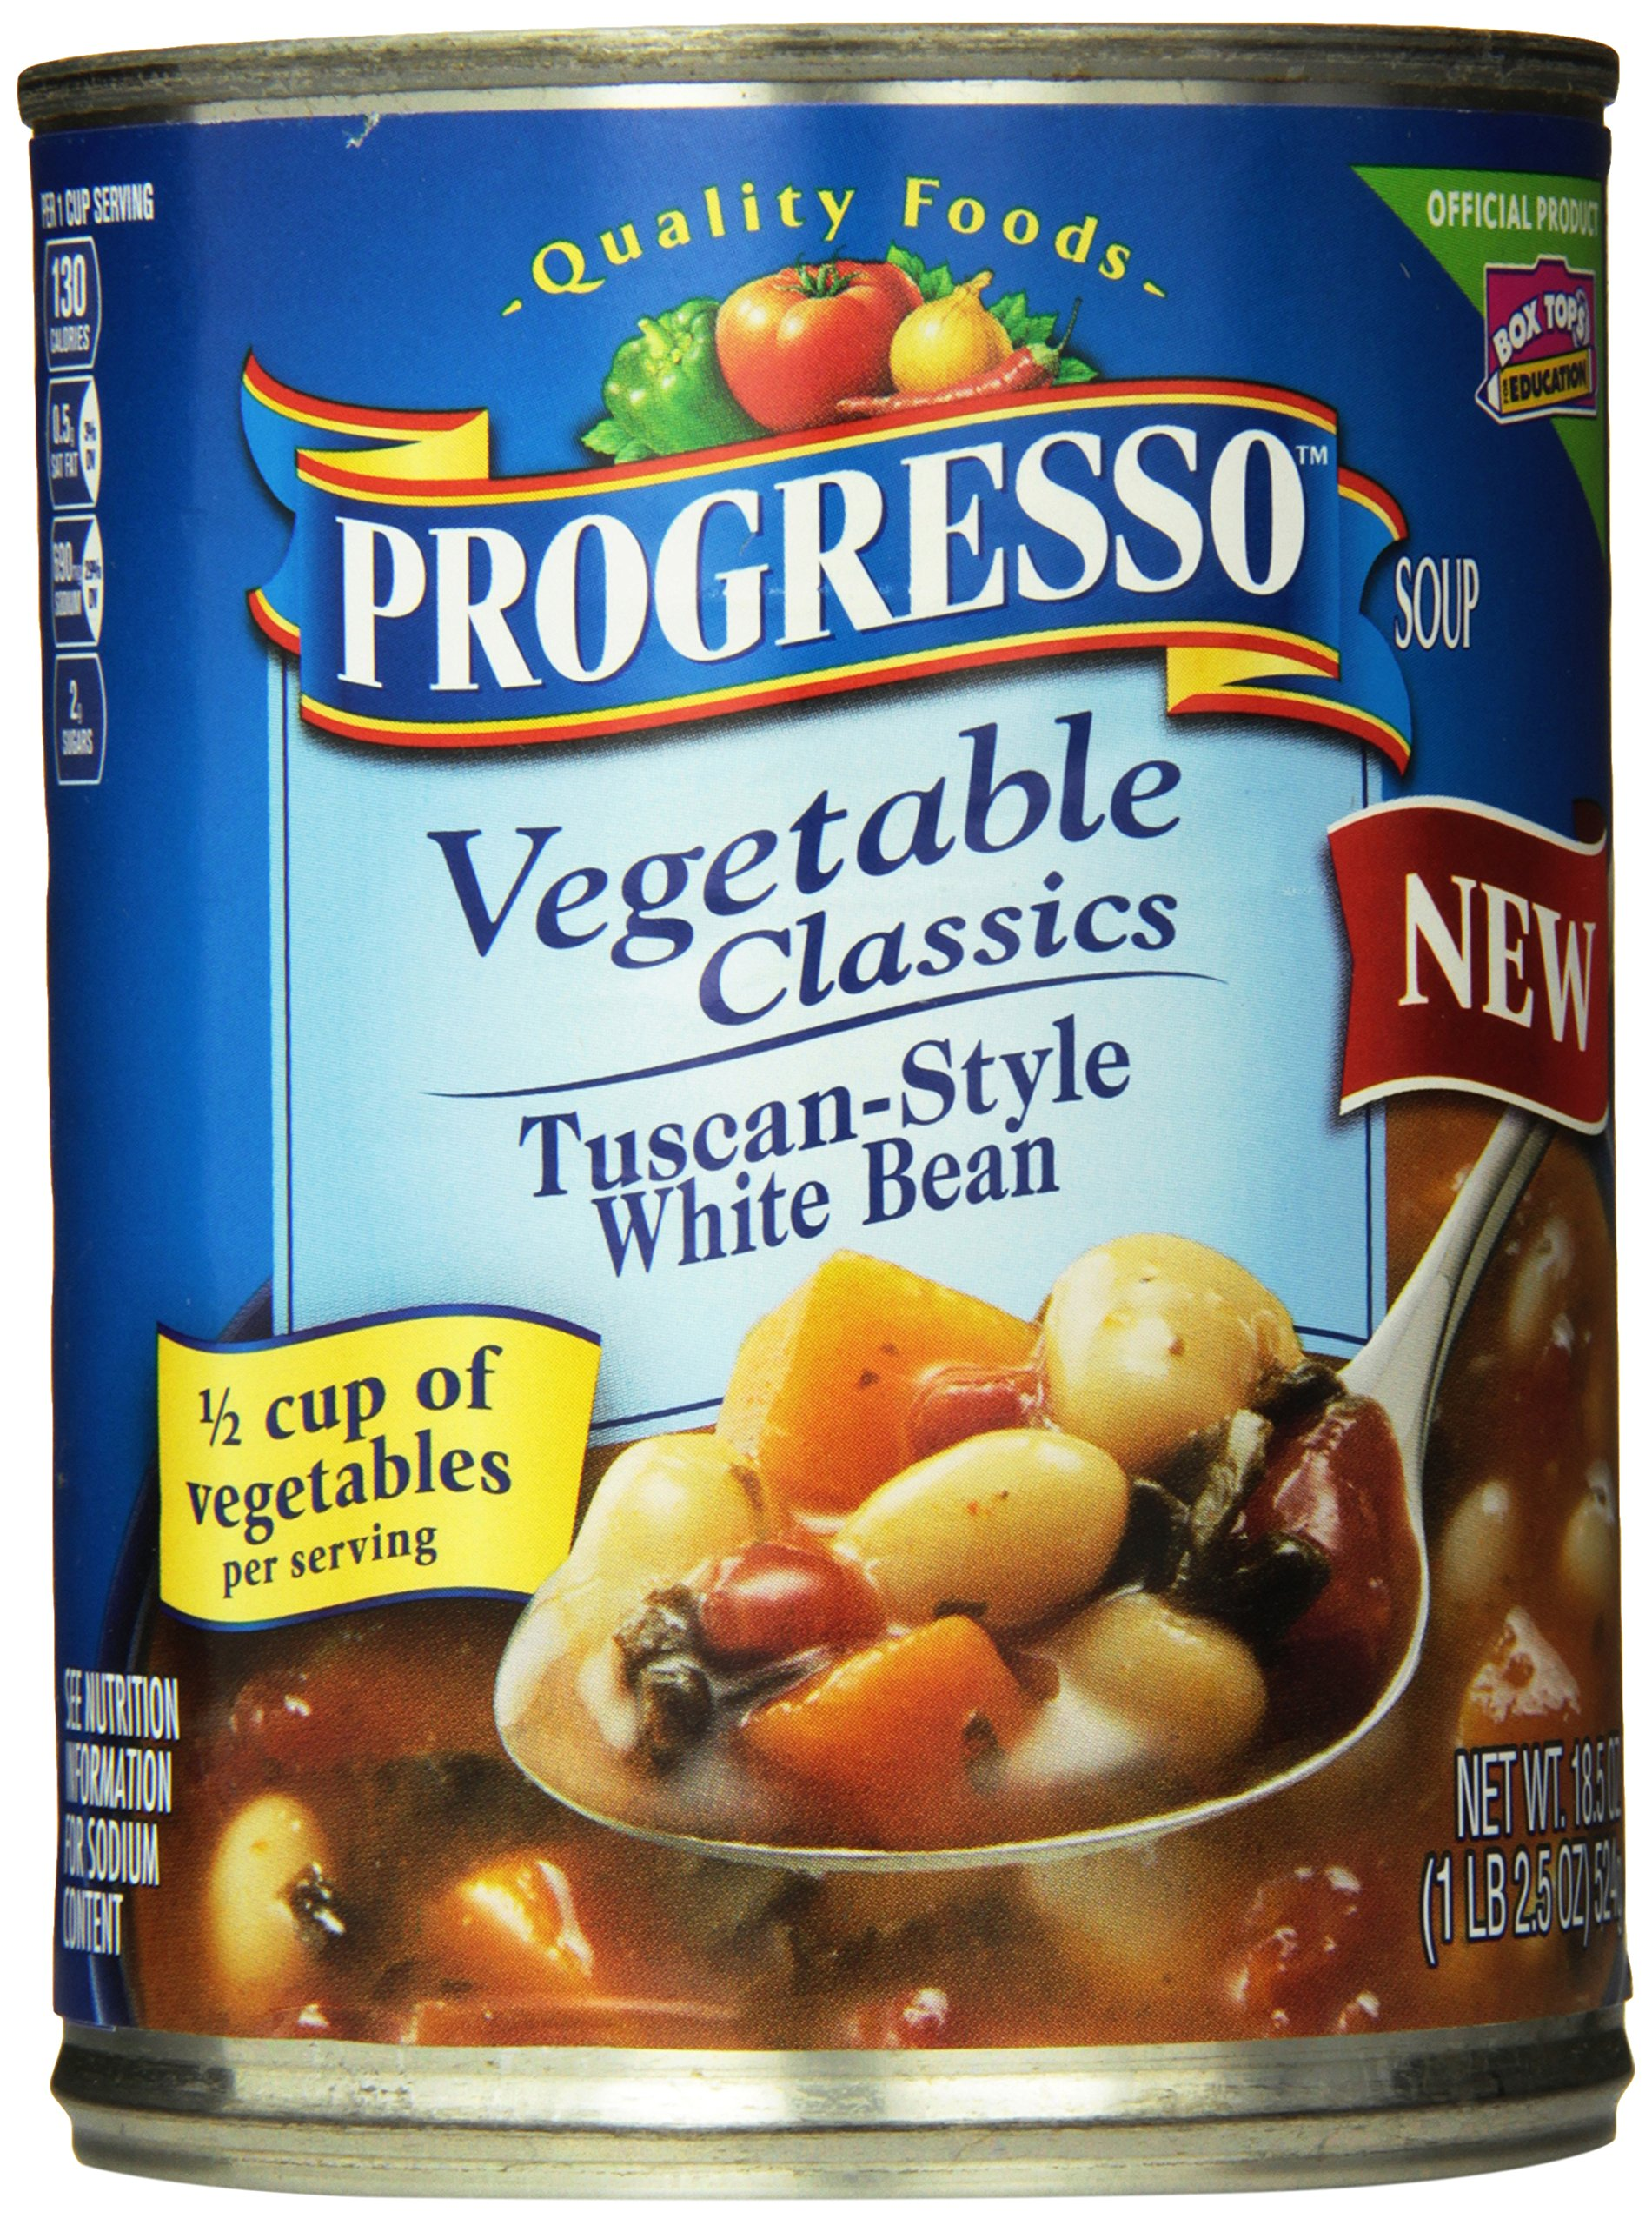 Progresso Vegetable Classics Tuscan-Style White Bean Soup 18.5 oz. Can (pack of 12)